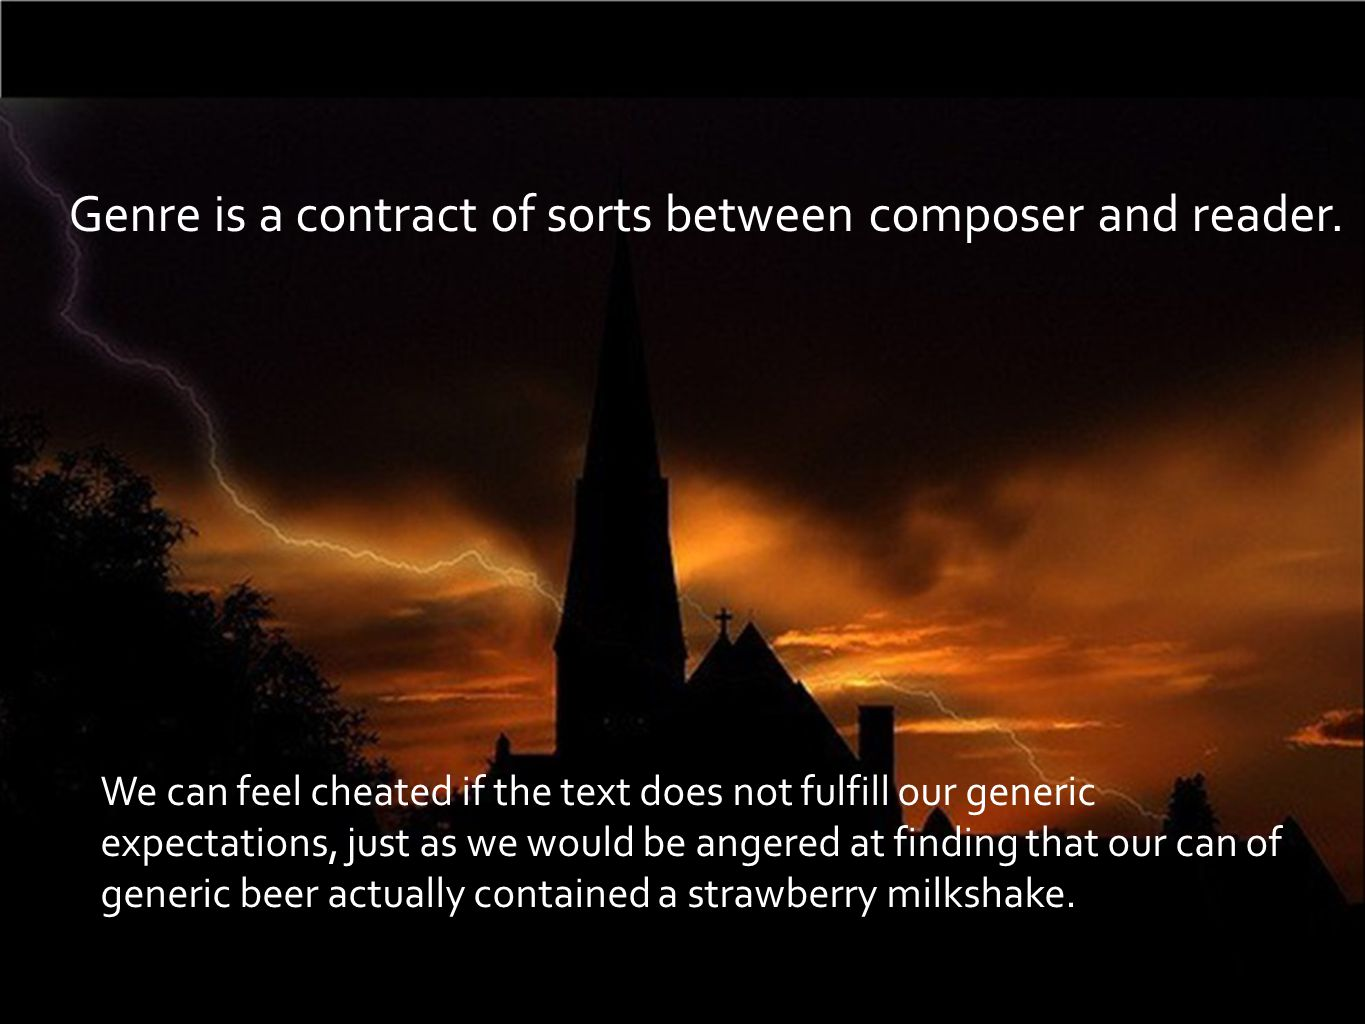 Genre is a contract of sorts between composer and reader.